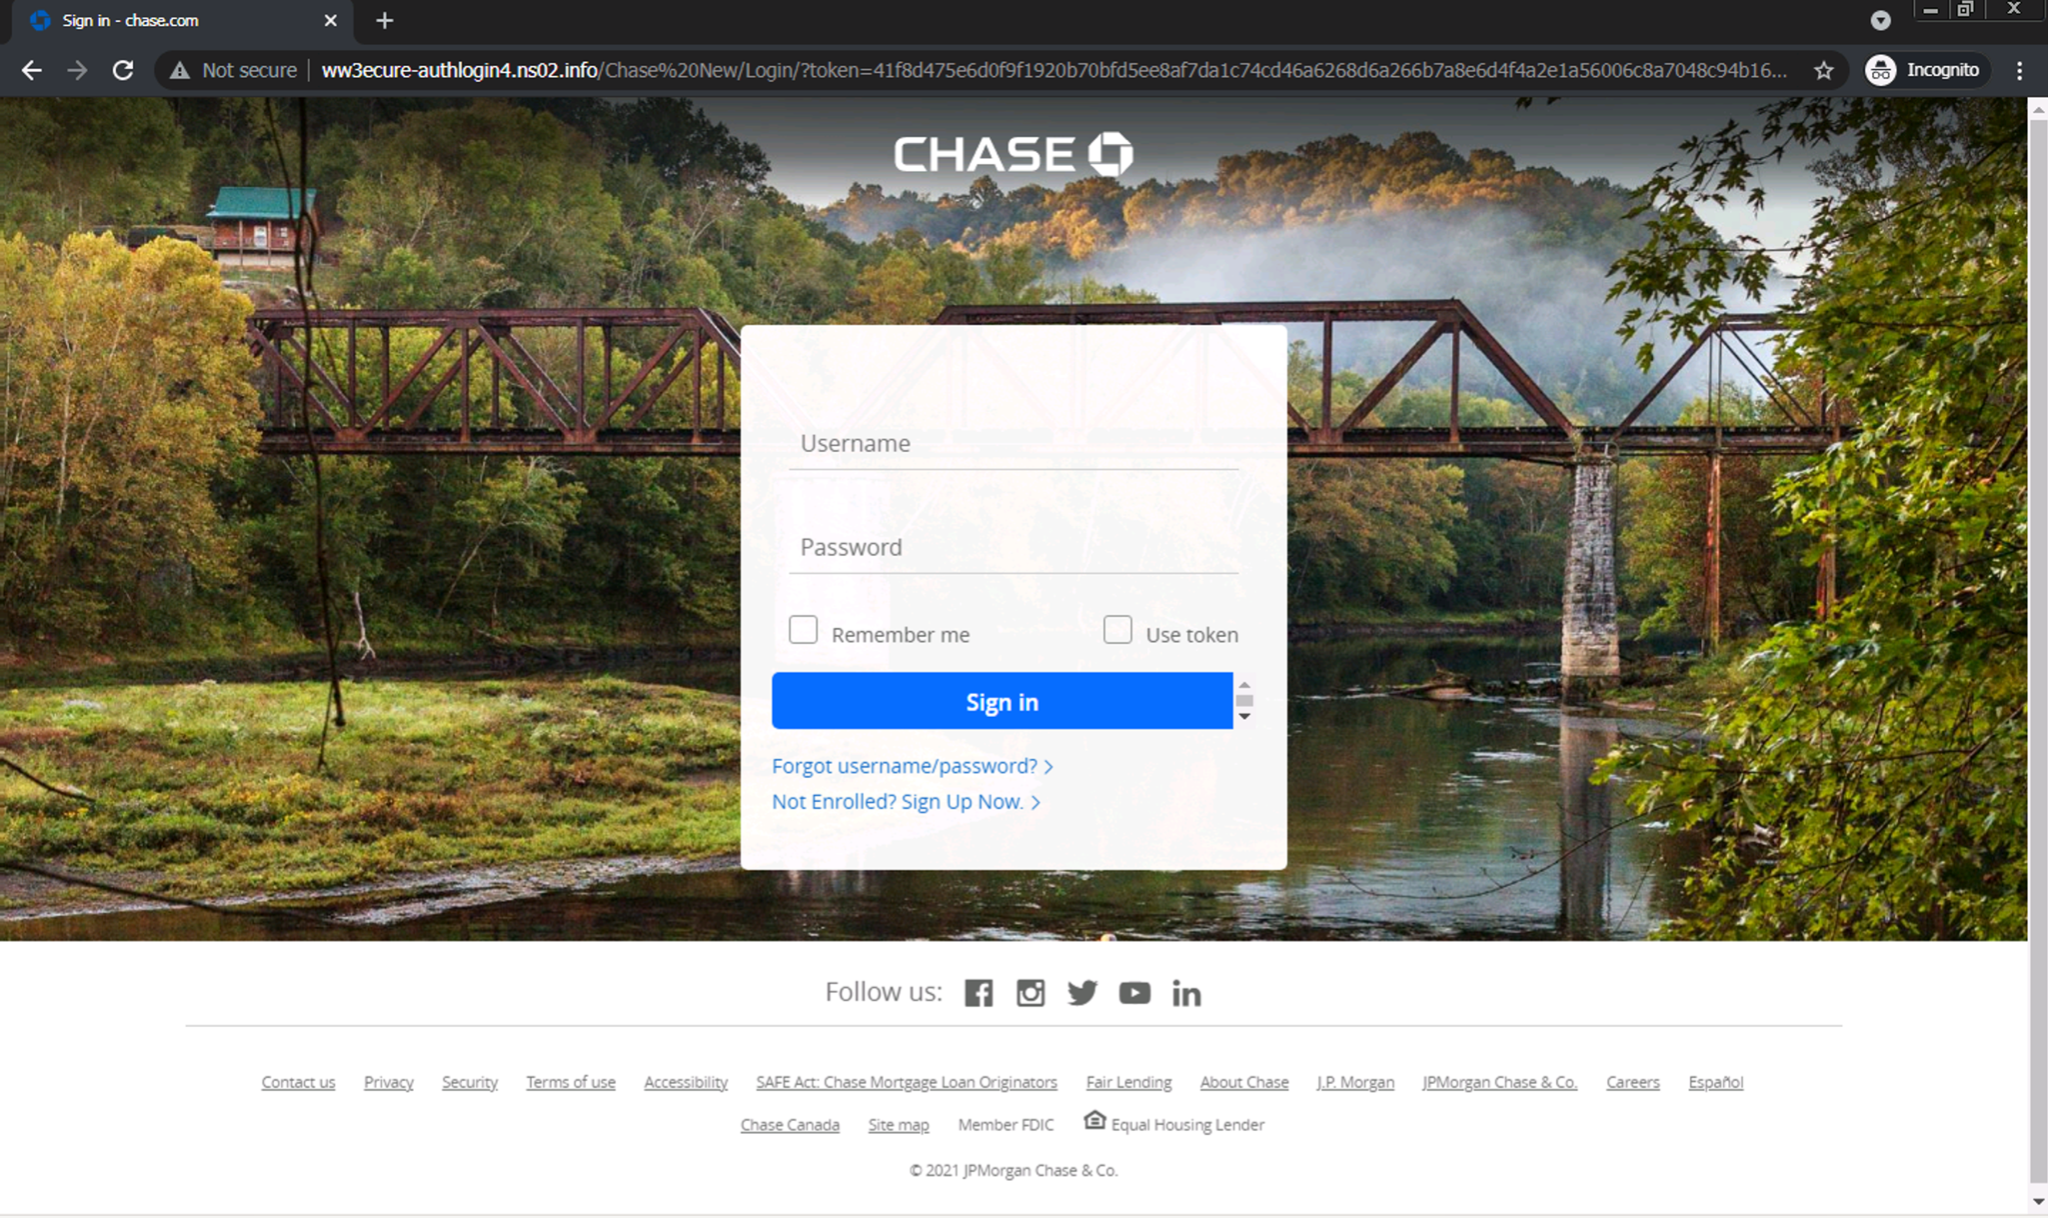 ww3ecure-authlogin4[.]ns02[.]info/Chase%20New/: A typical example of a consumer phishing attack targeting Chase bank.